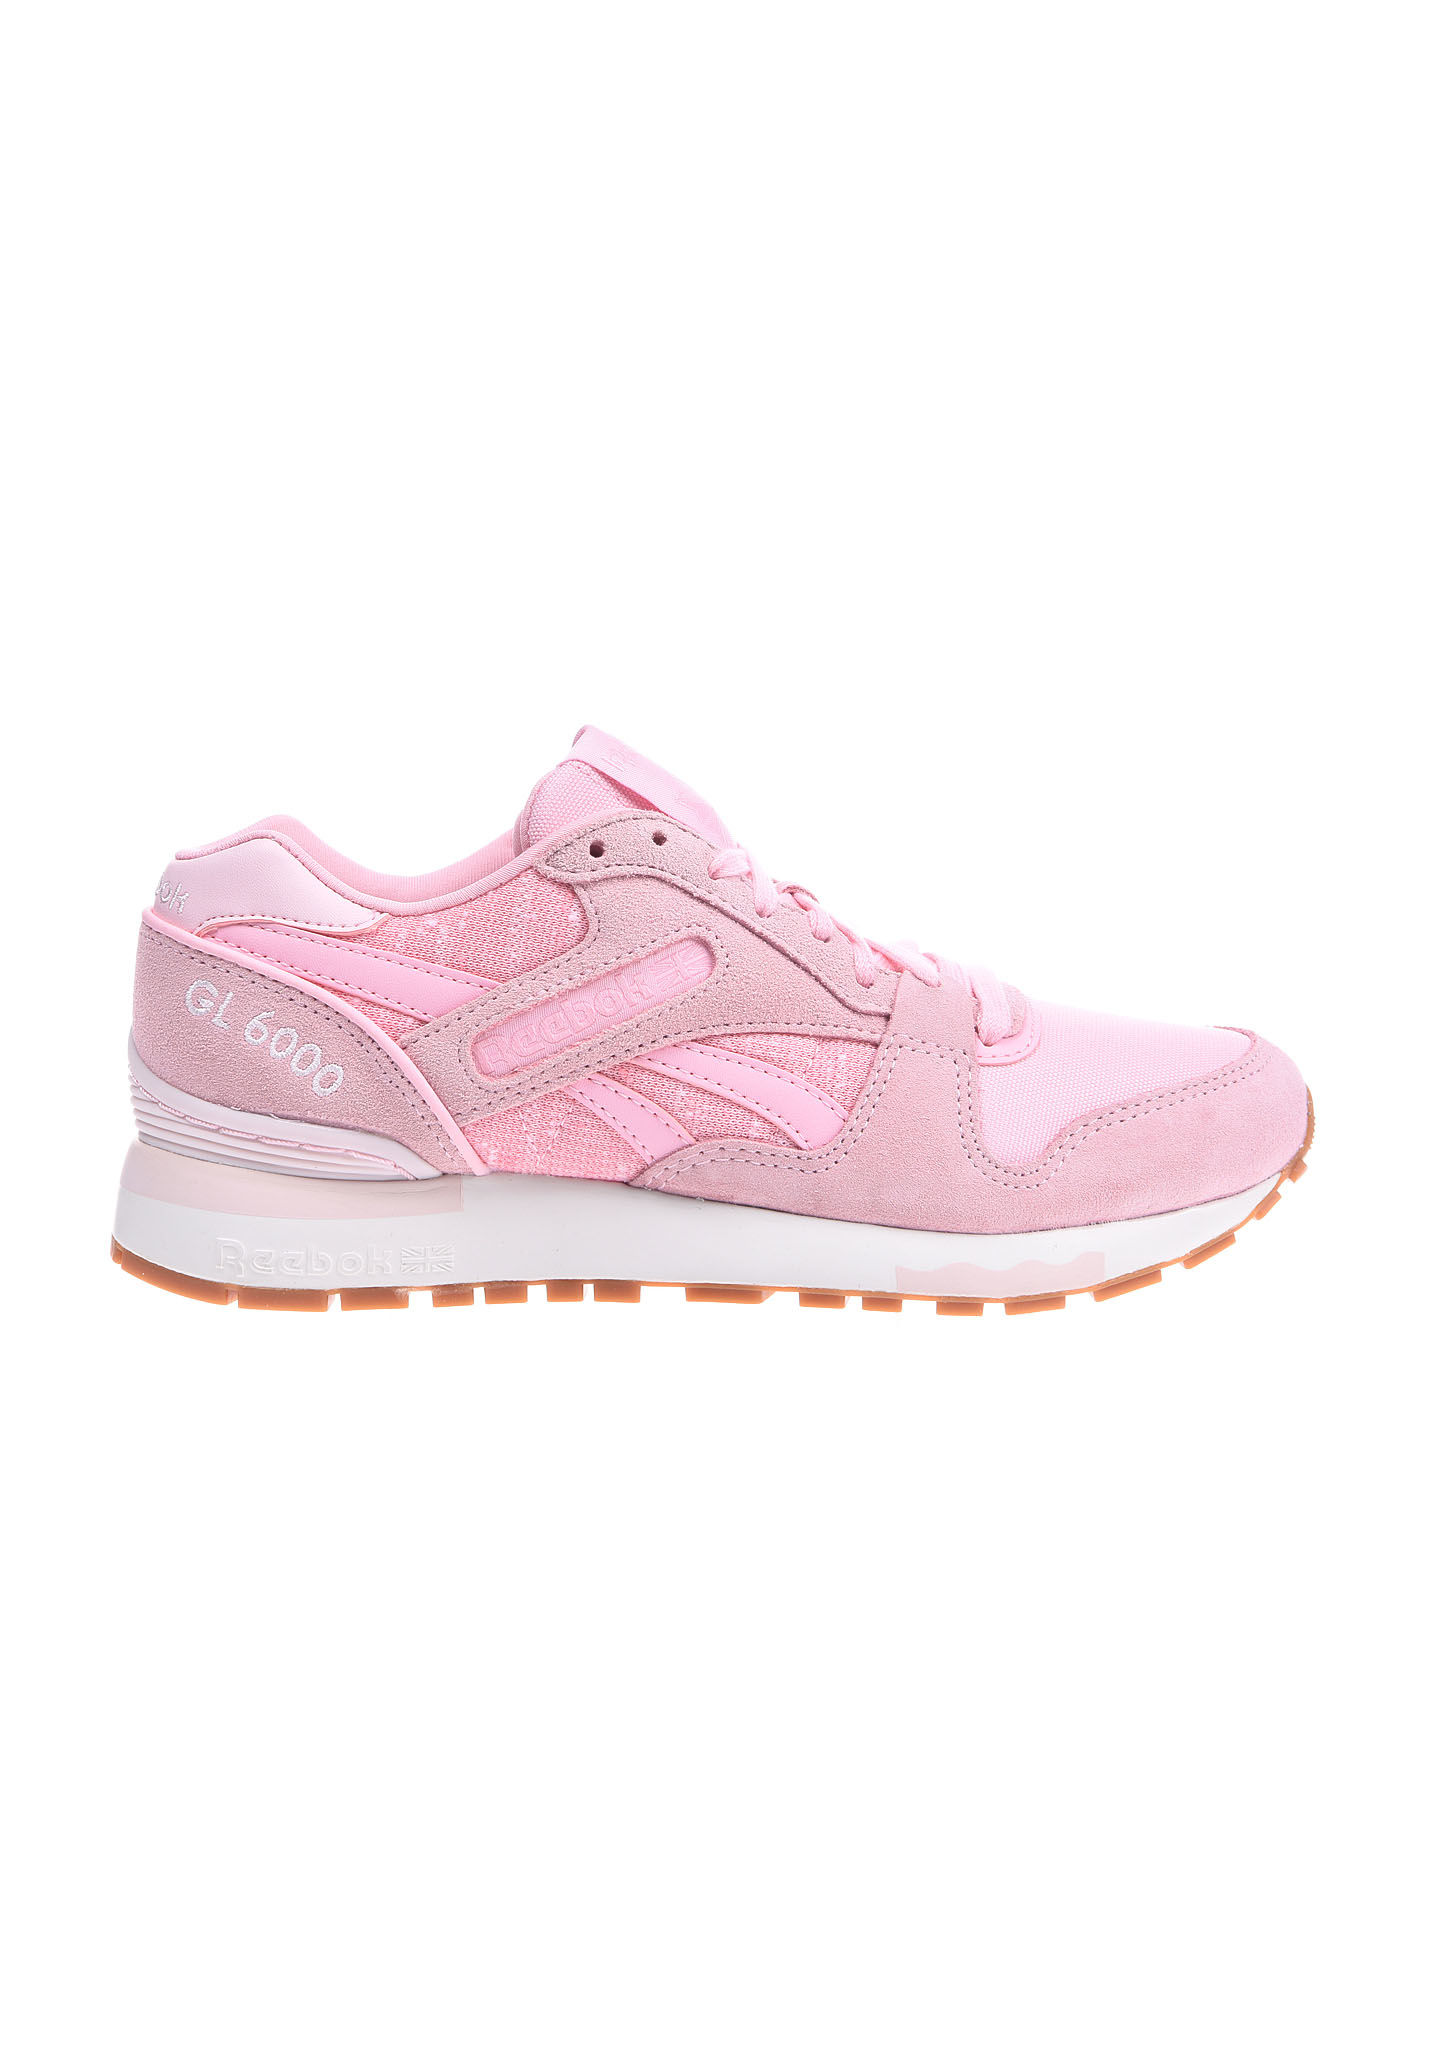 affecc30a170 ... Pale Daim Reebok GL 6000 WR - Baskets pour Femme - Rose - Planet Sports  ...